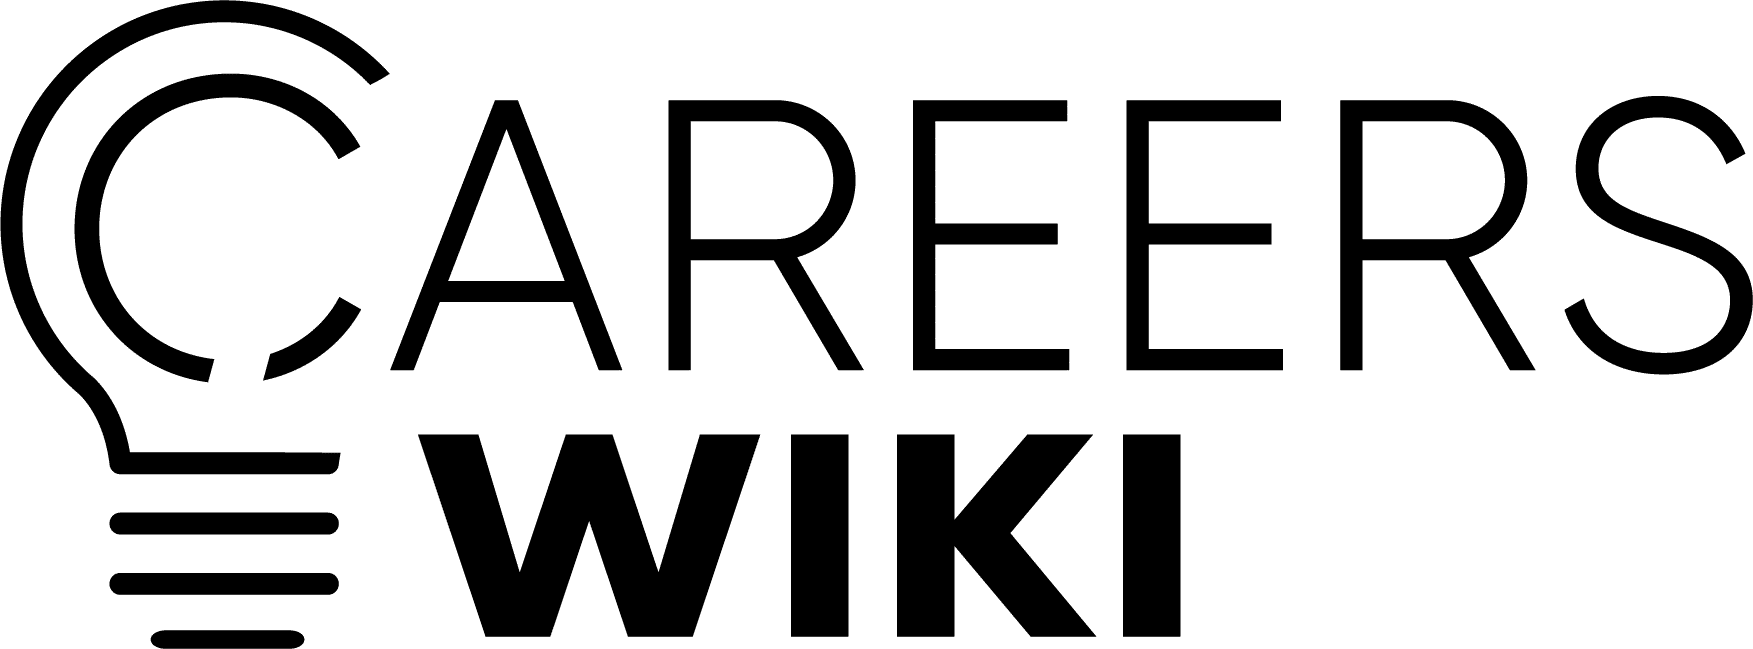 CareersWiki Logo Black